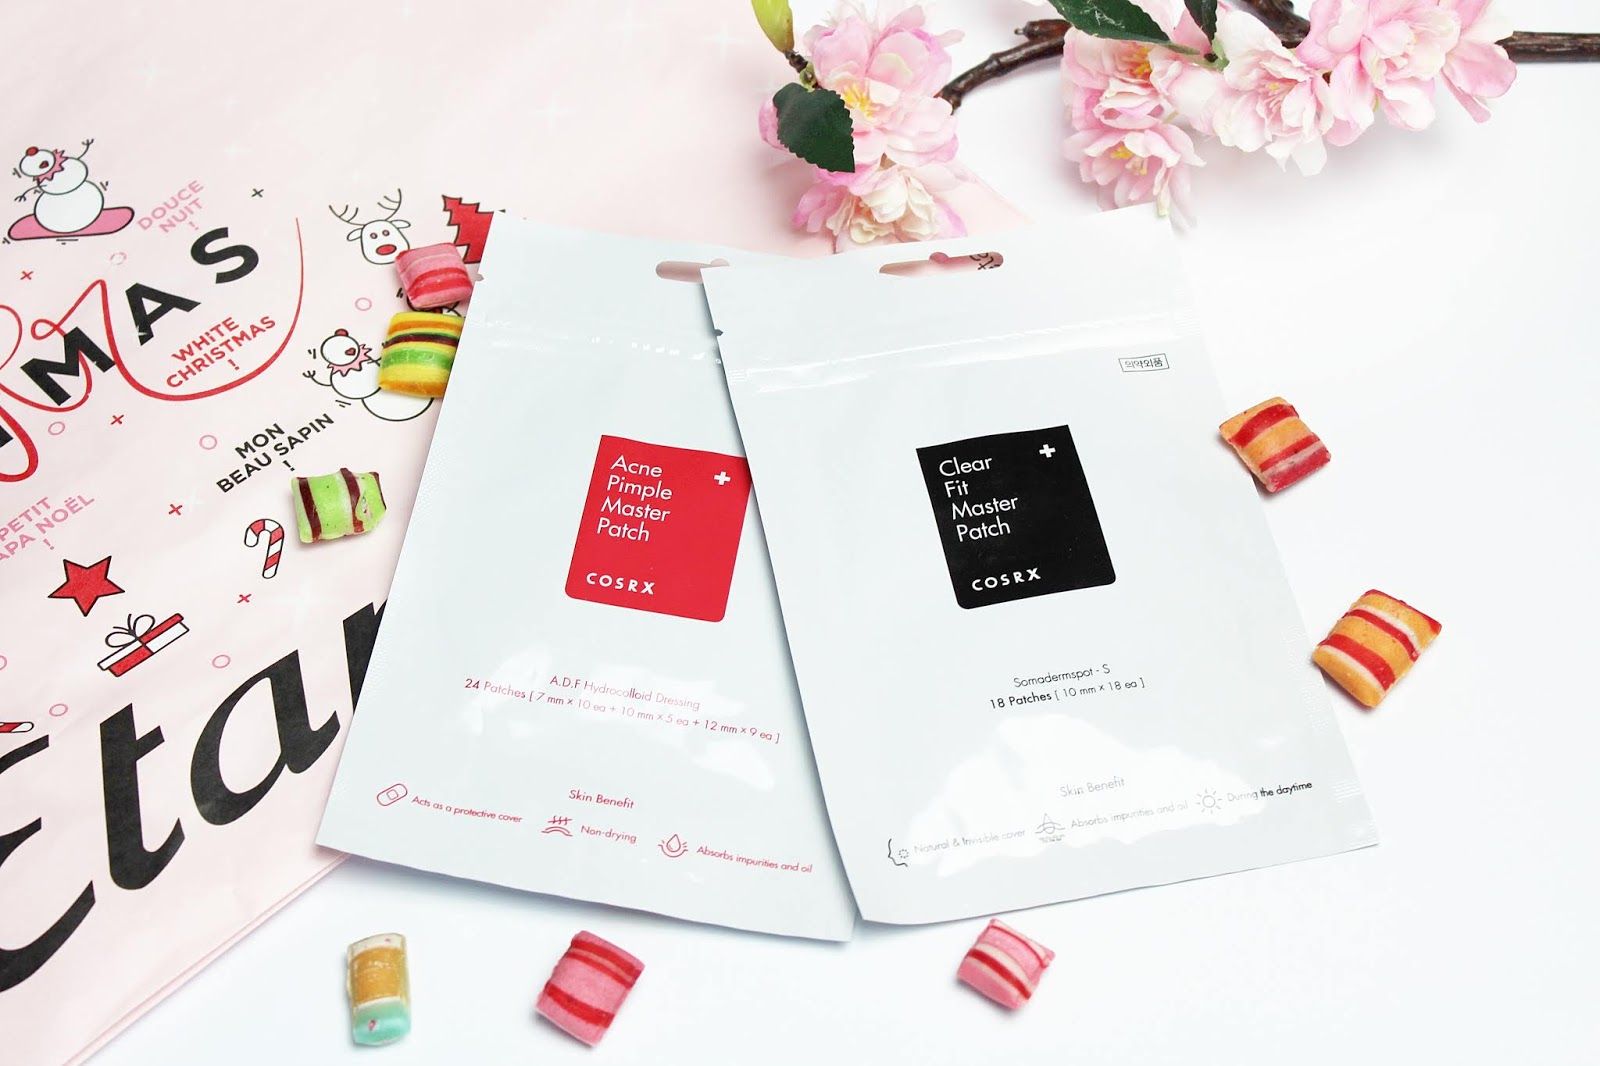 Cosrx, Acne Pimple and Clear Fit Master Patch